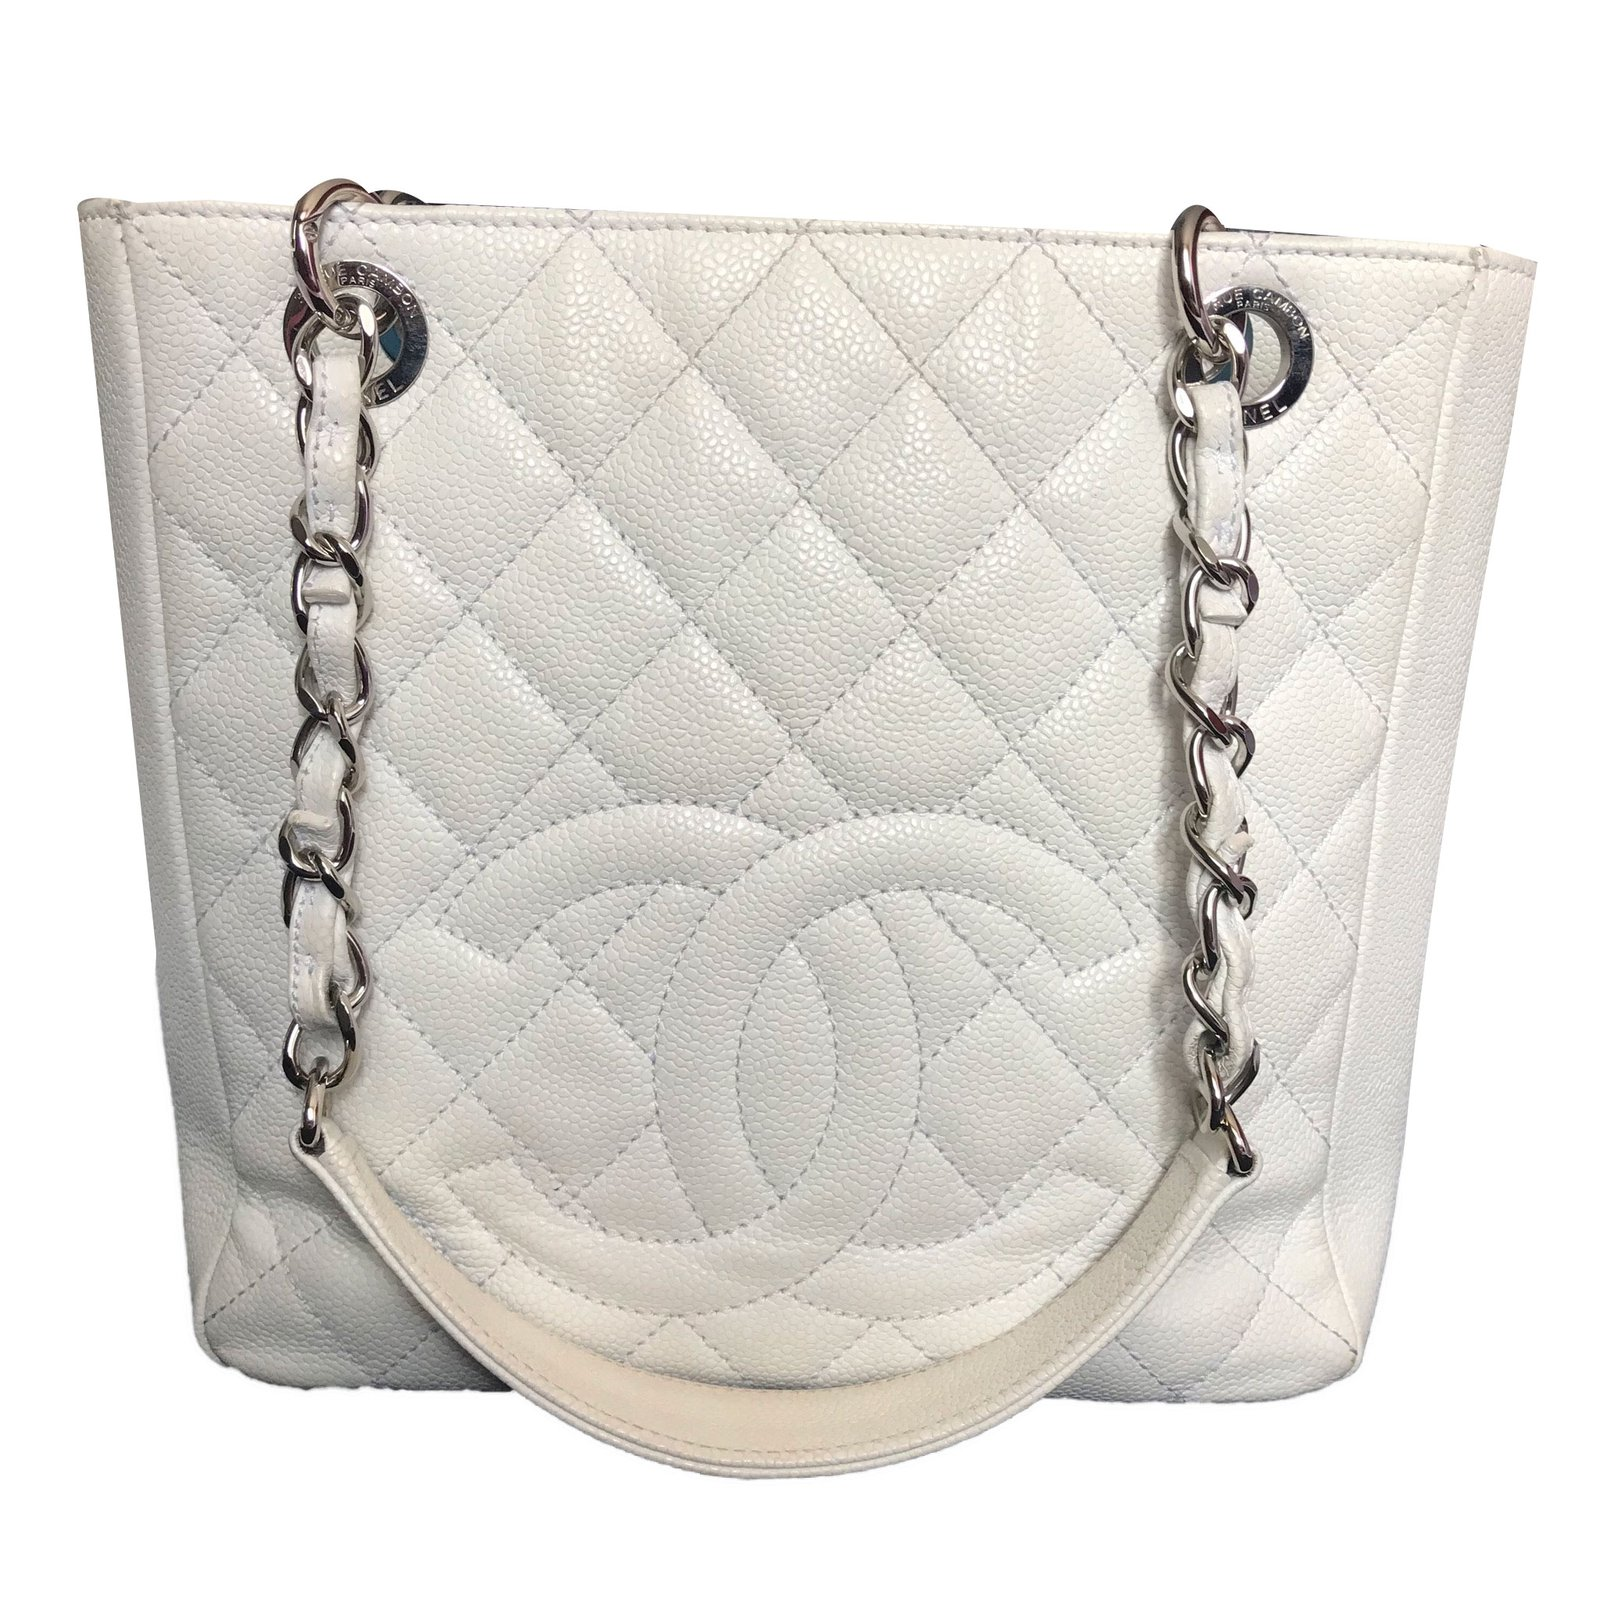 44922abad2a4 Chanel PETITE SHOPPING TOTE Handbags Leather White ref.77420 - Joli ...